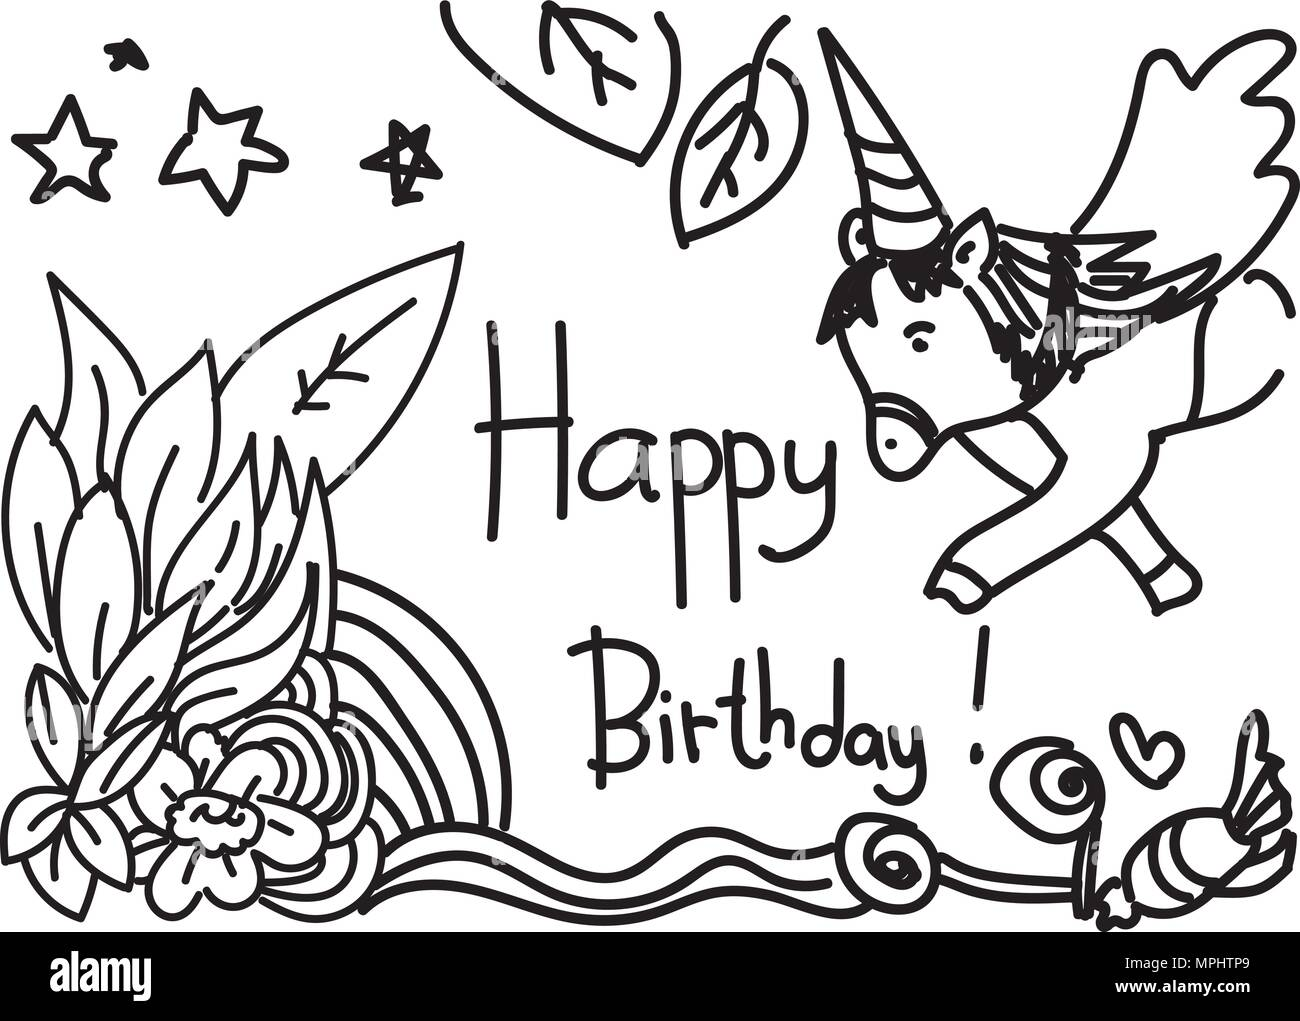 Happy Birthday Card Design With Unicorn And Leaves In Handdrawn